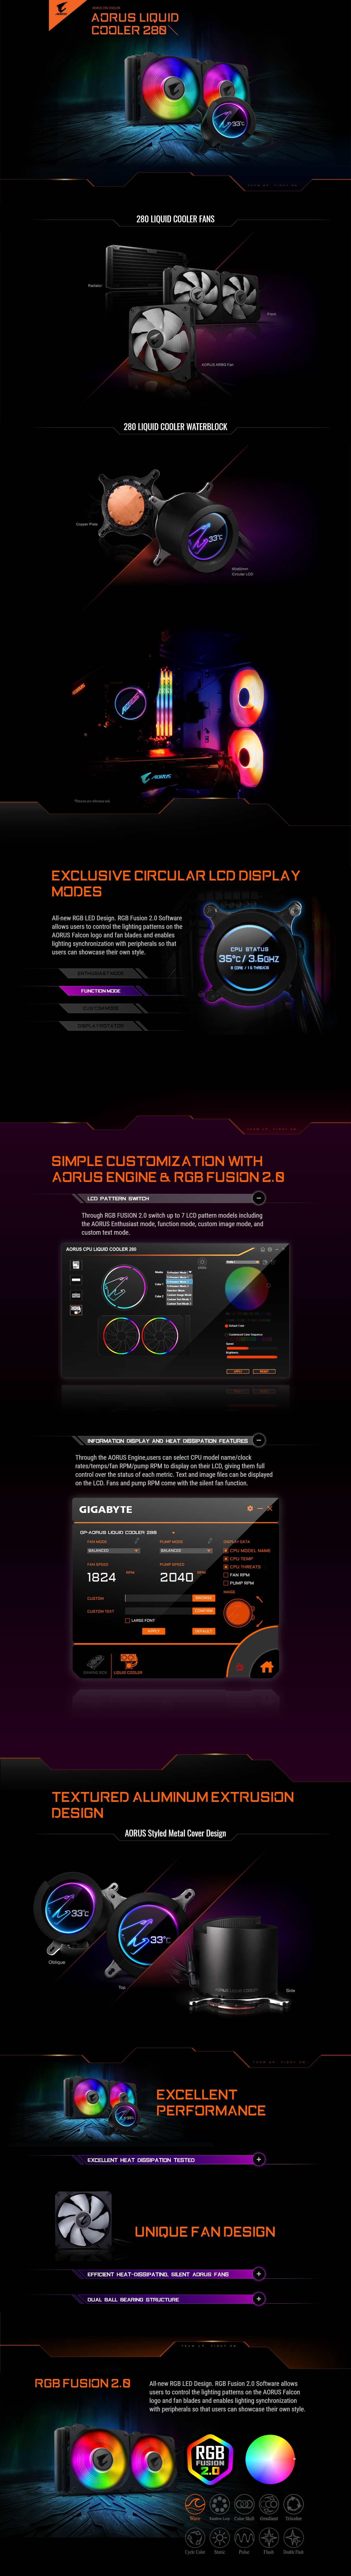 A large marketing image providing additional information about the product Gigabyte Aorus RGB 280 AIO Liquid Cooler - Additional alt info not provided